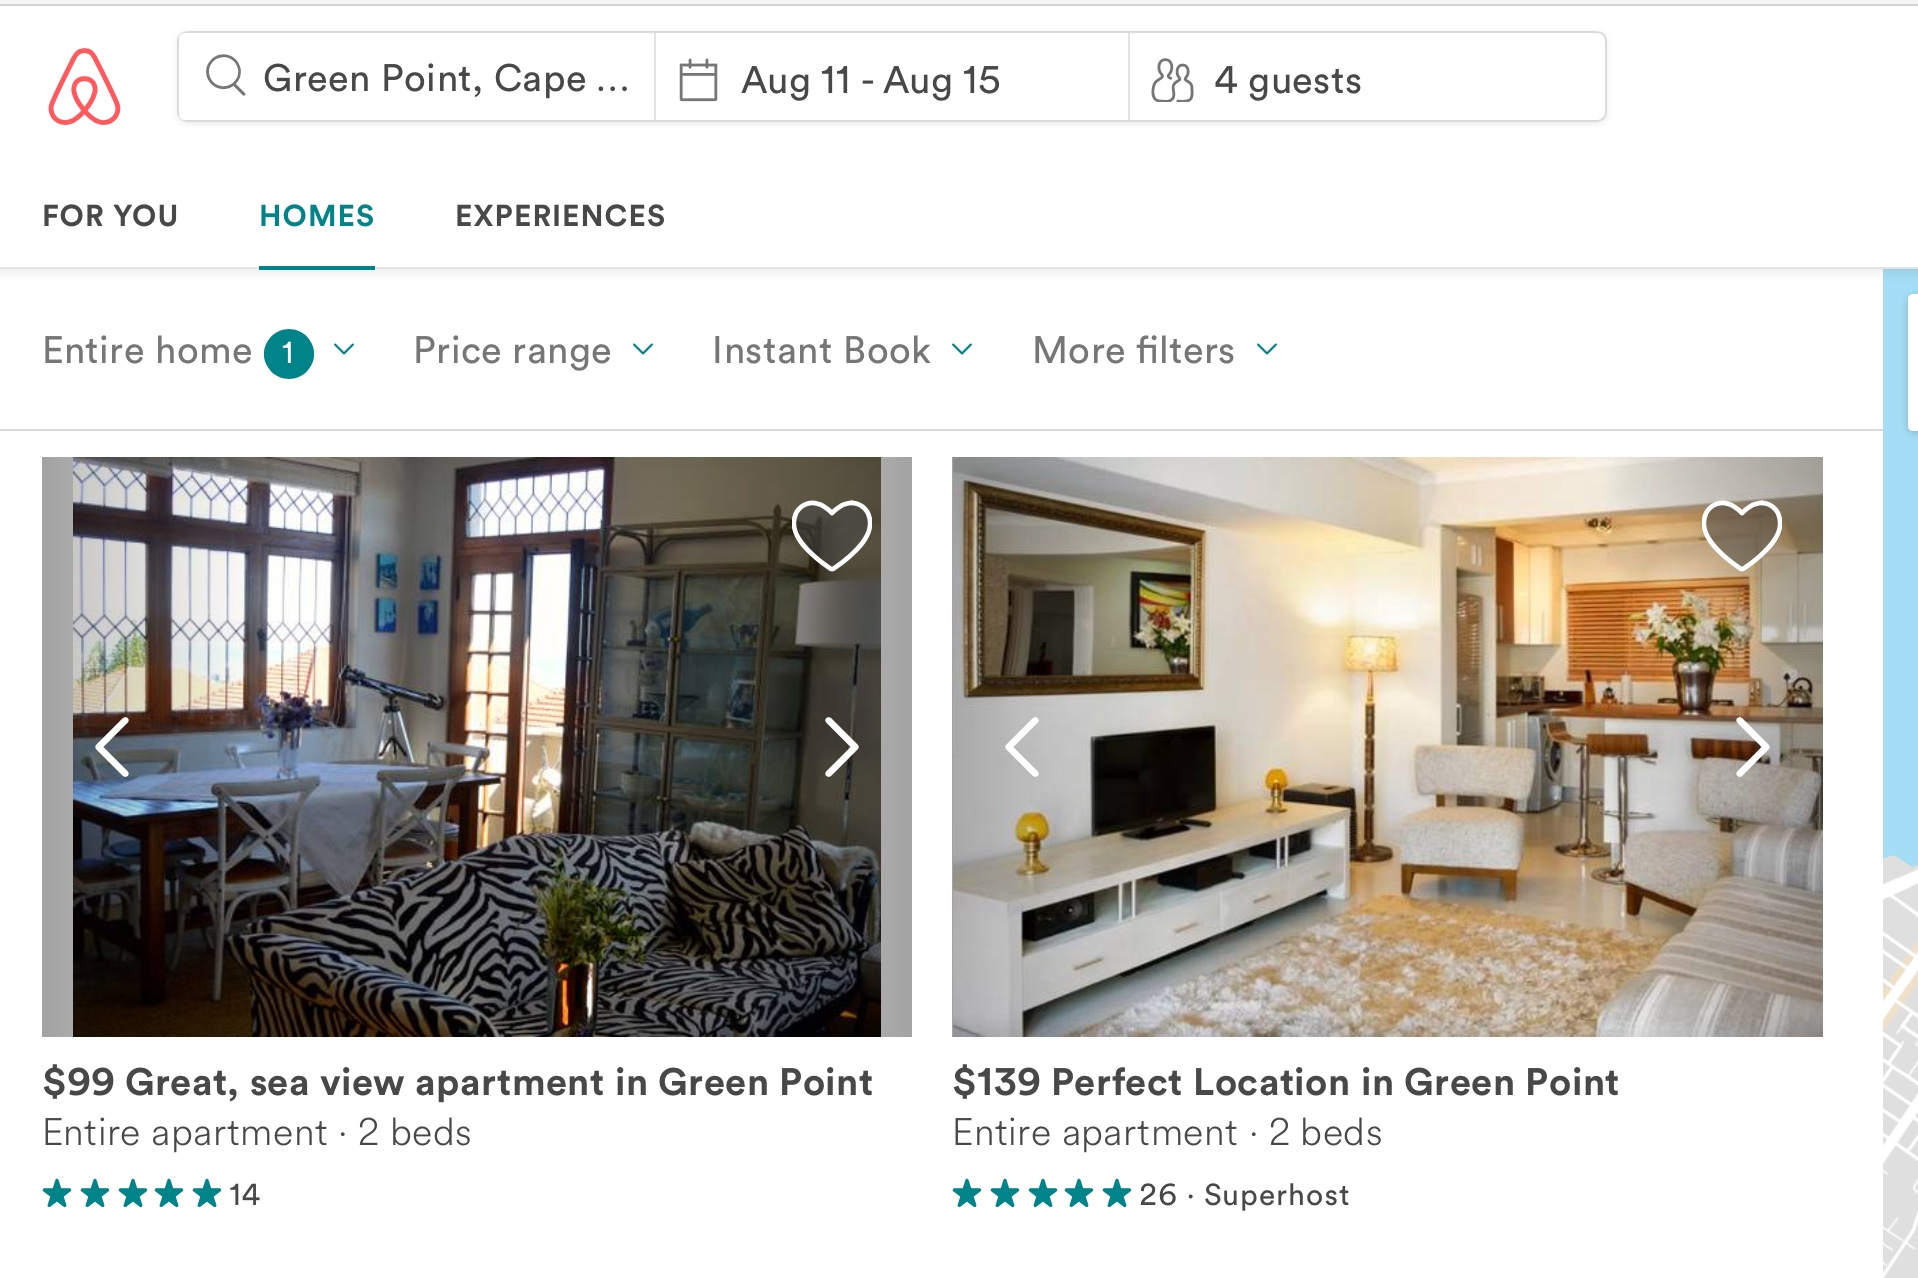 A Host's guide to Airbnb: 60 tips - Airbnb Community